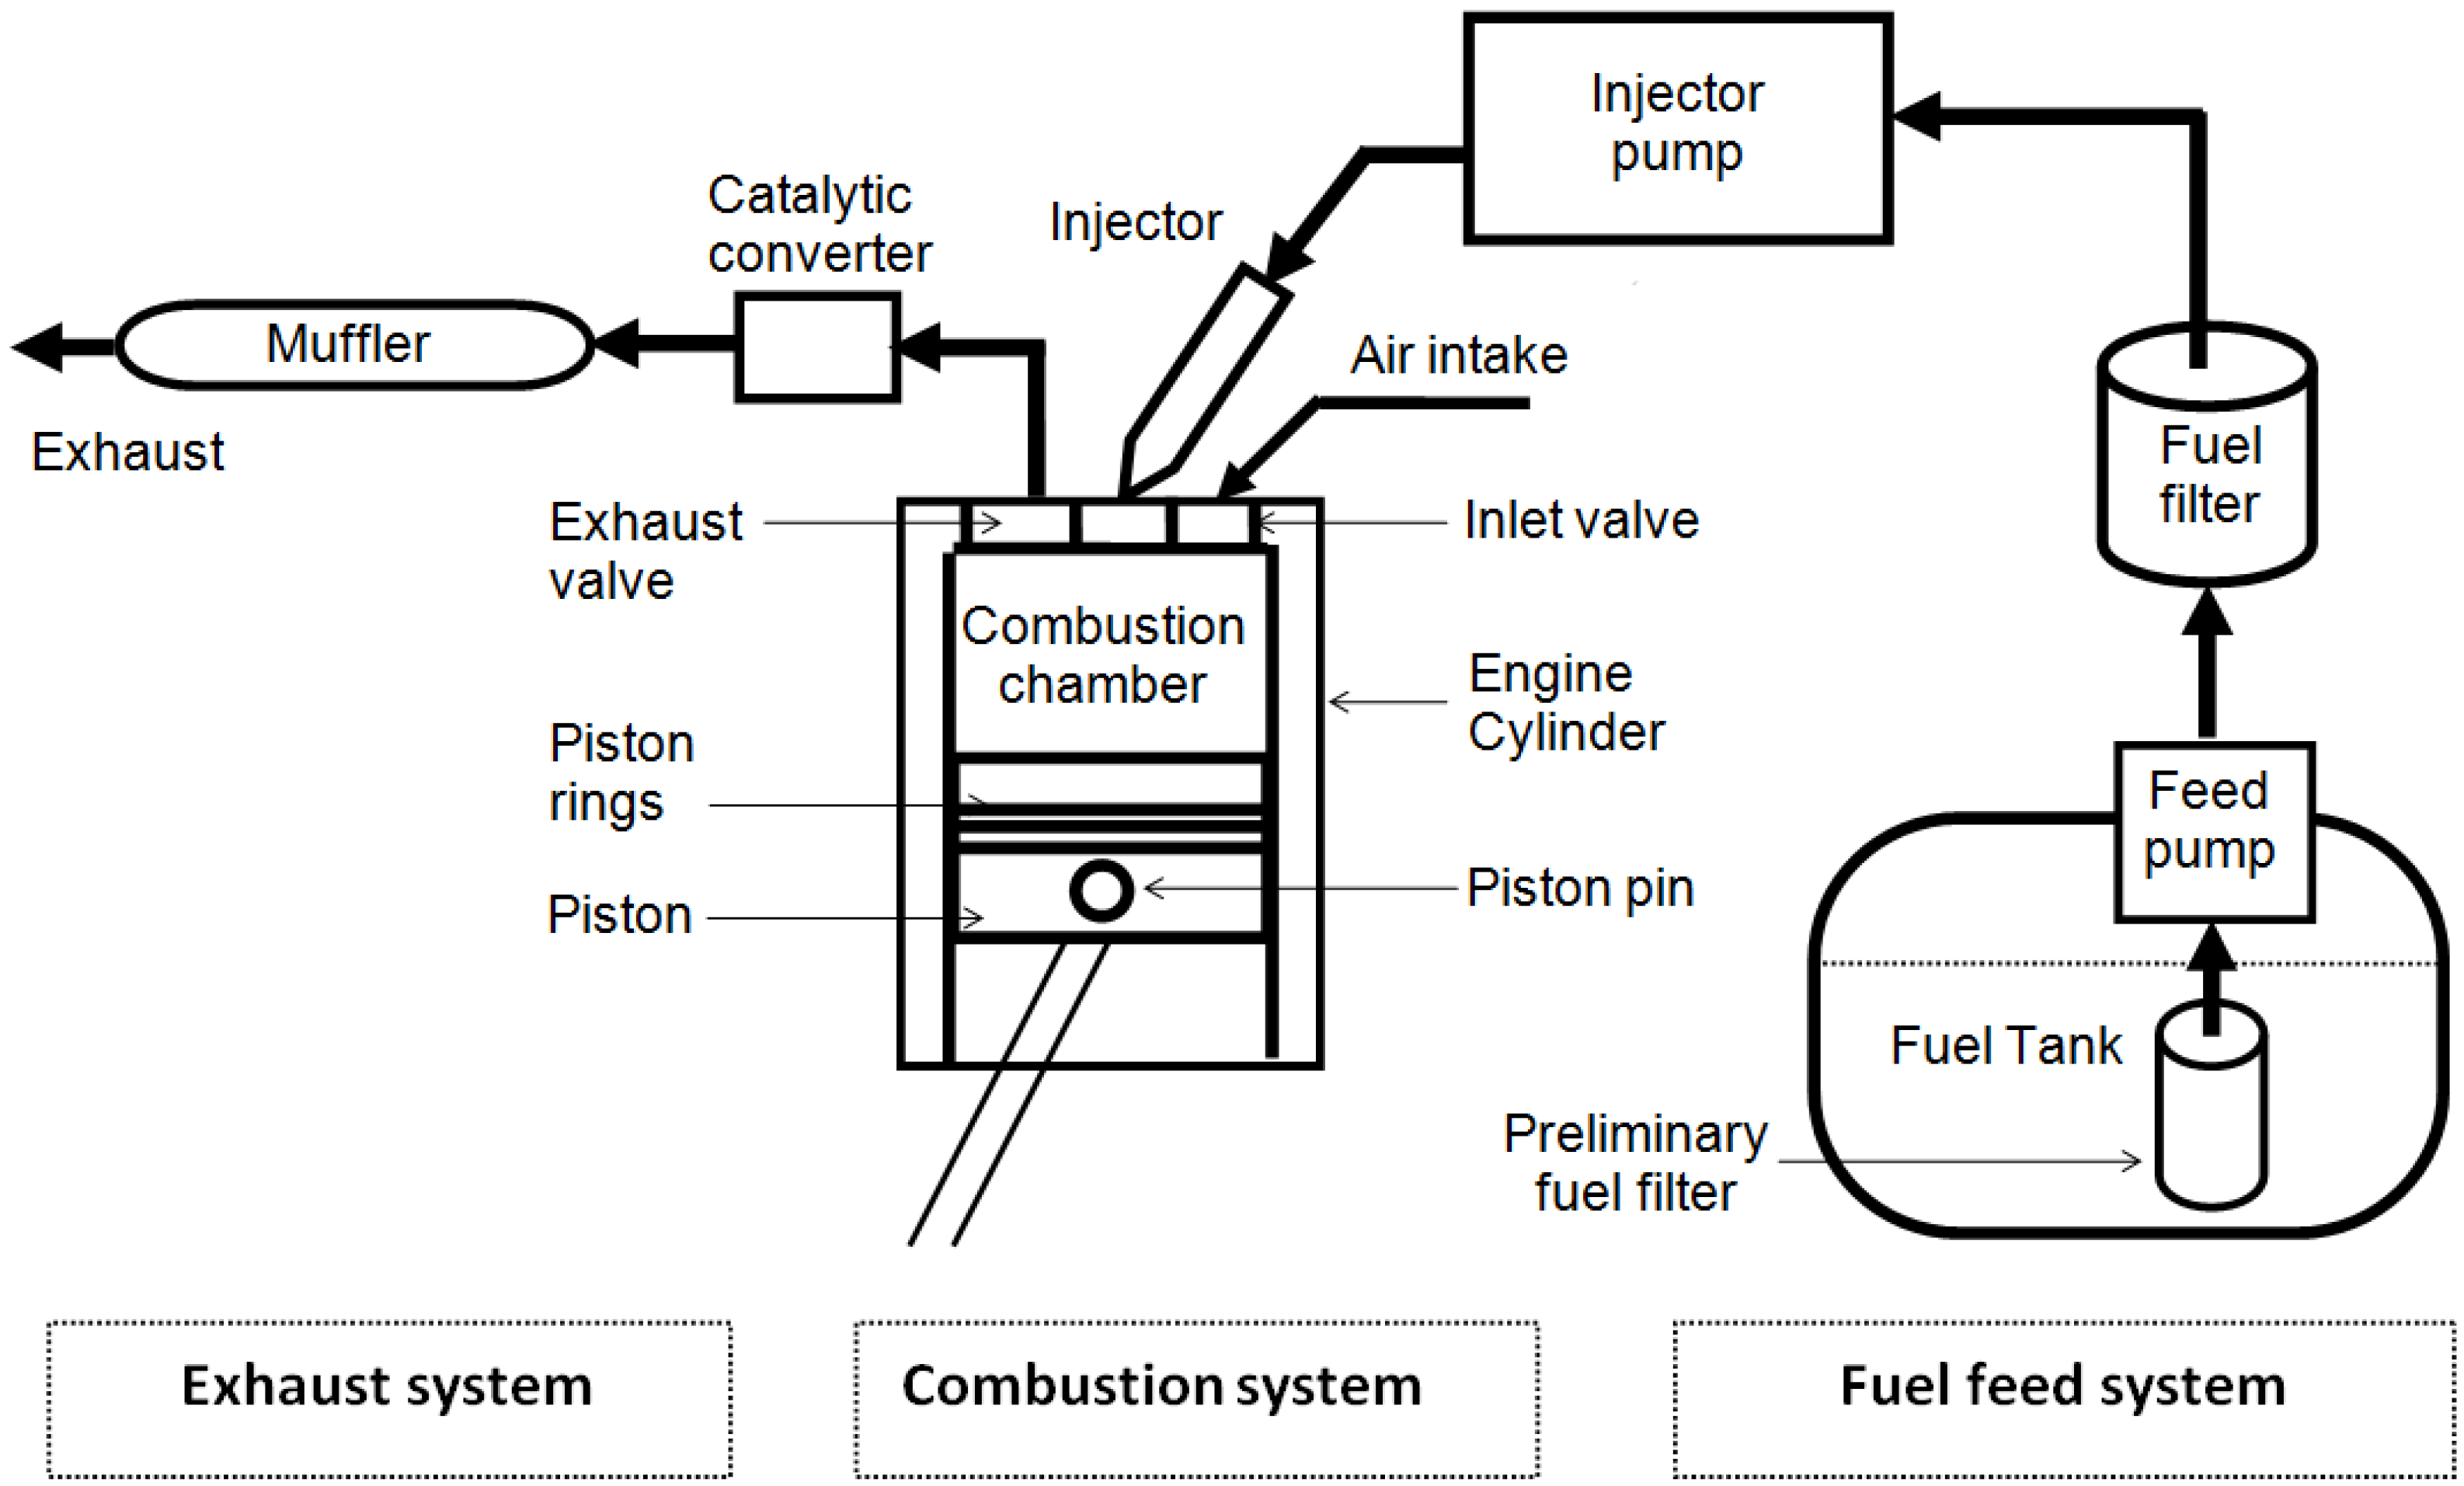 Biofuel Engine Diagram Trusted Wiring Diagrams Cogeneration Energies Free Full Text The Use Of Artificial Neural Networks